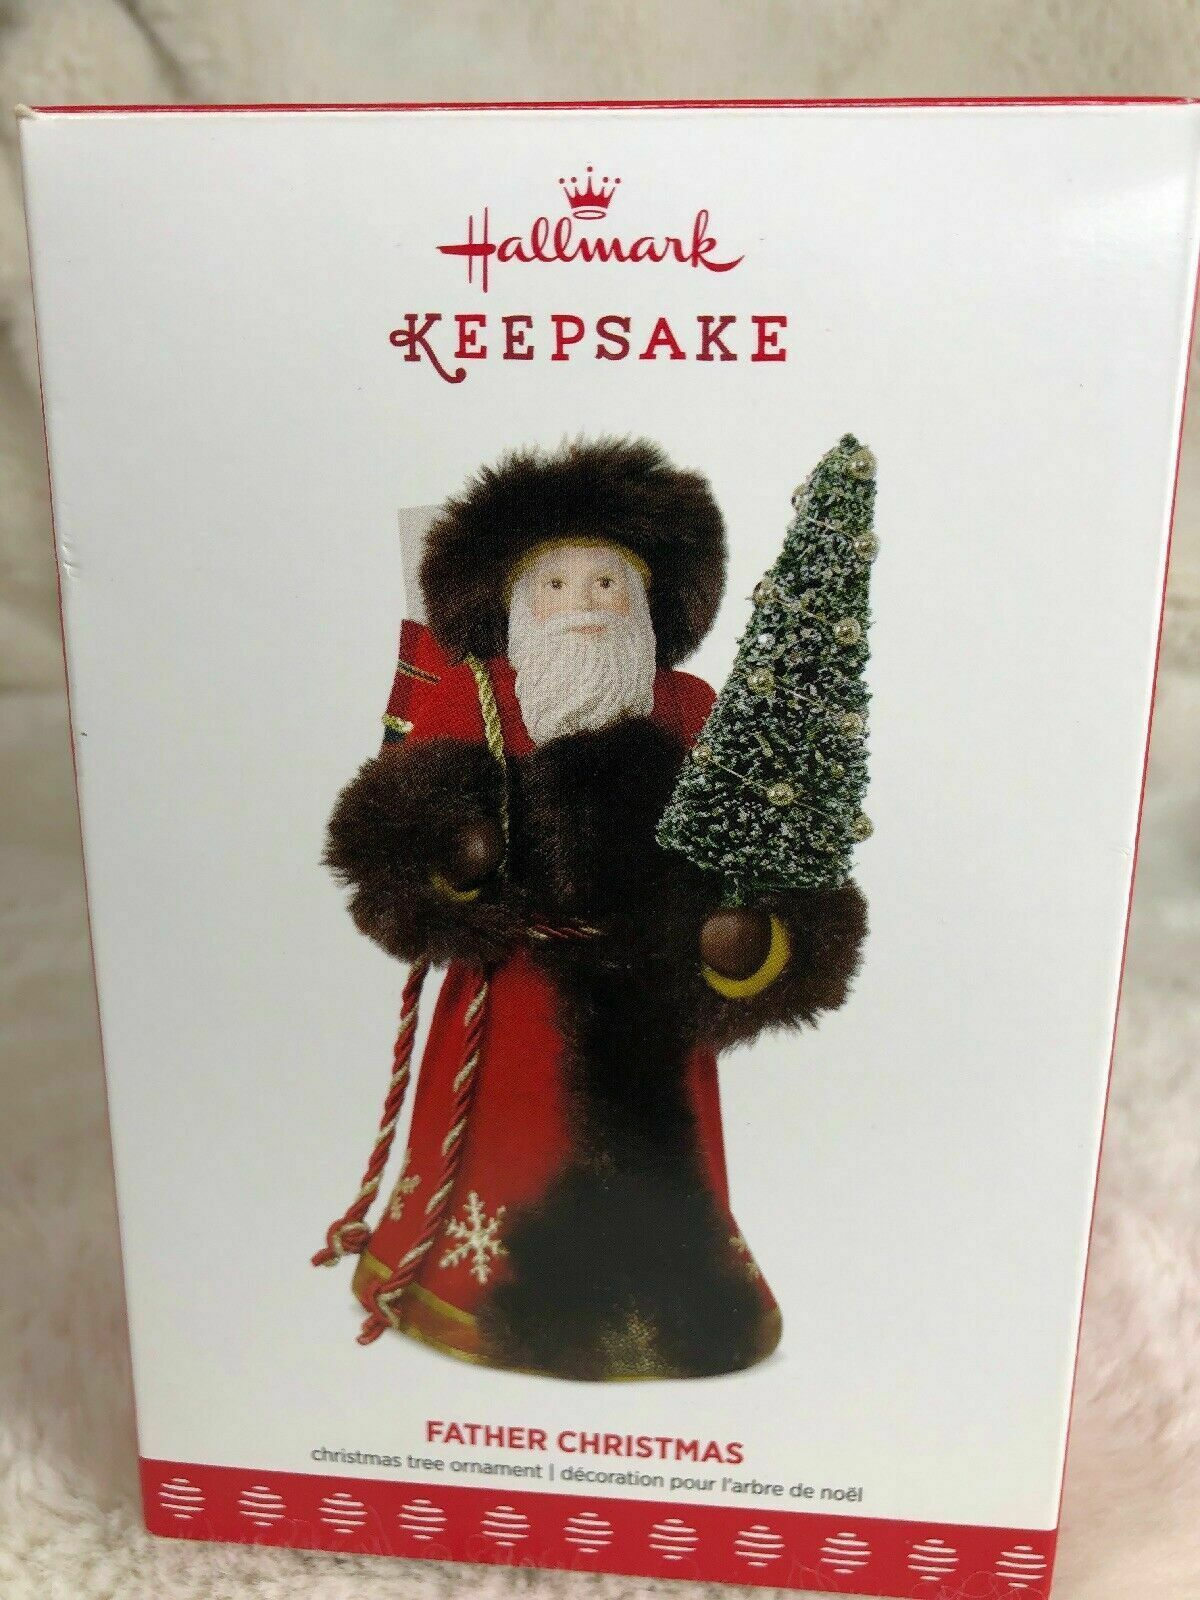 2017 Hallmark Keepsake Father Christmas Ornament